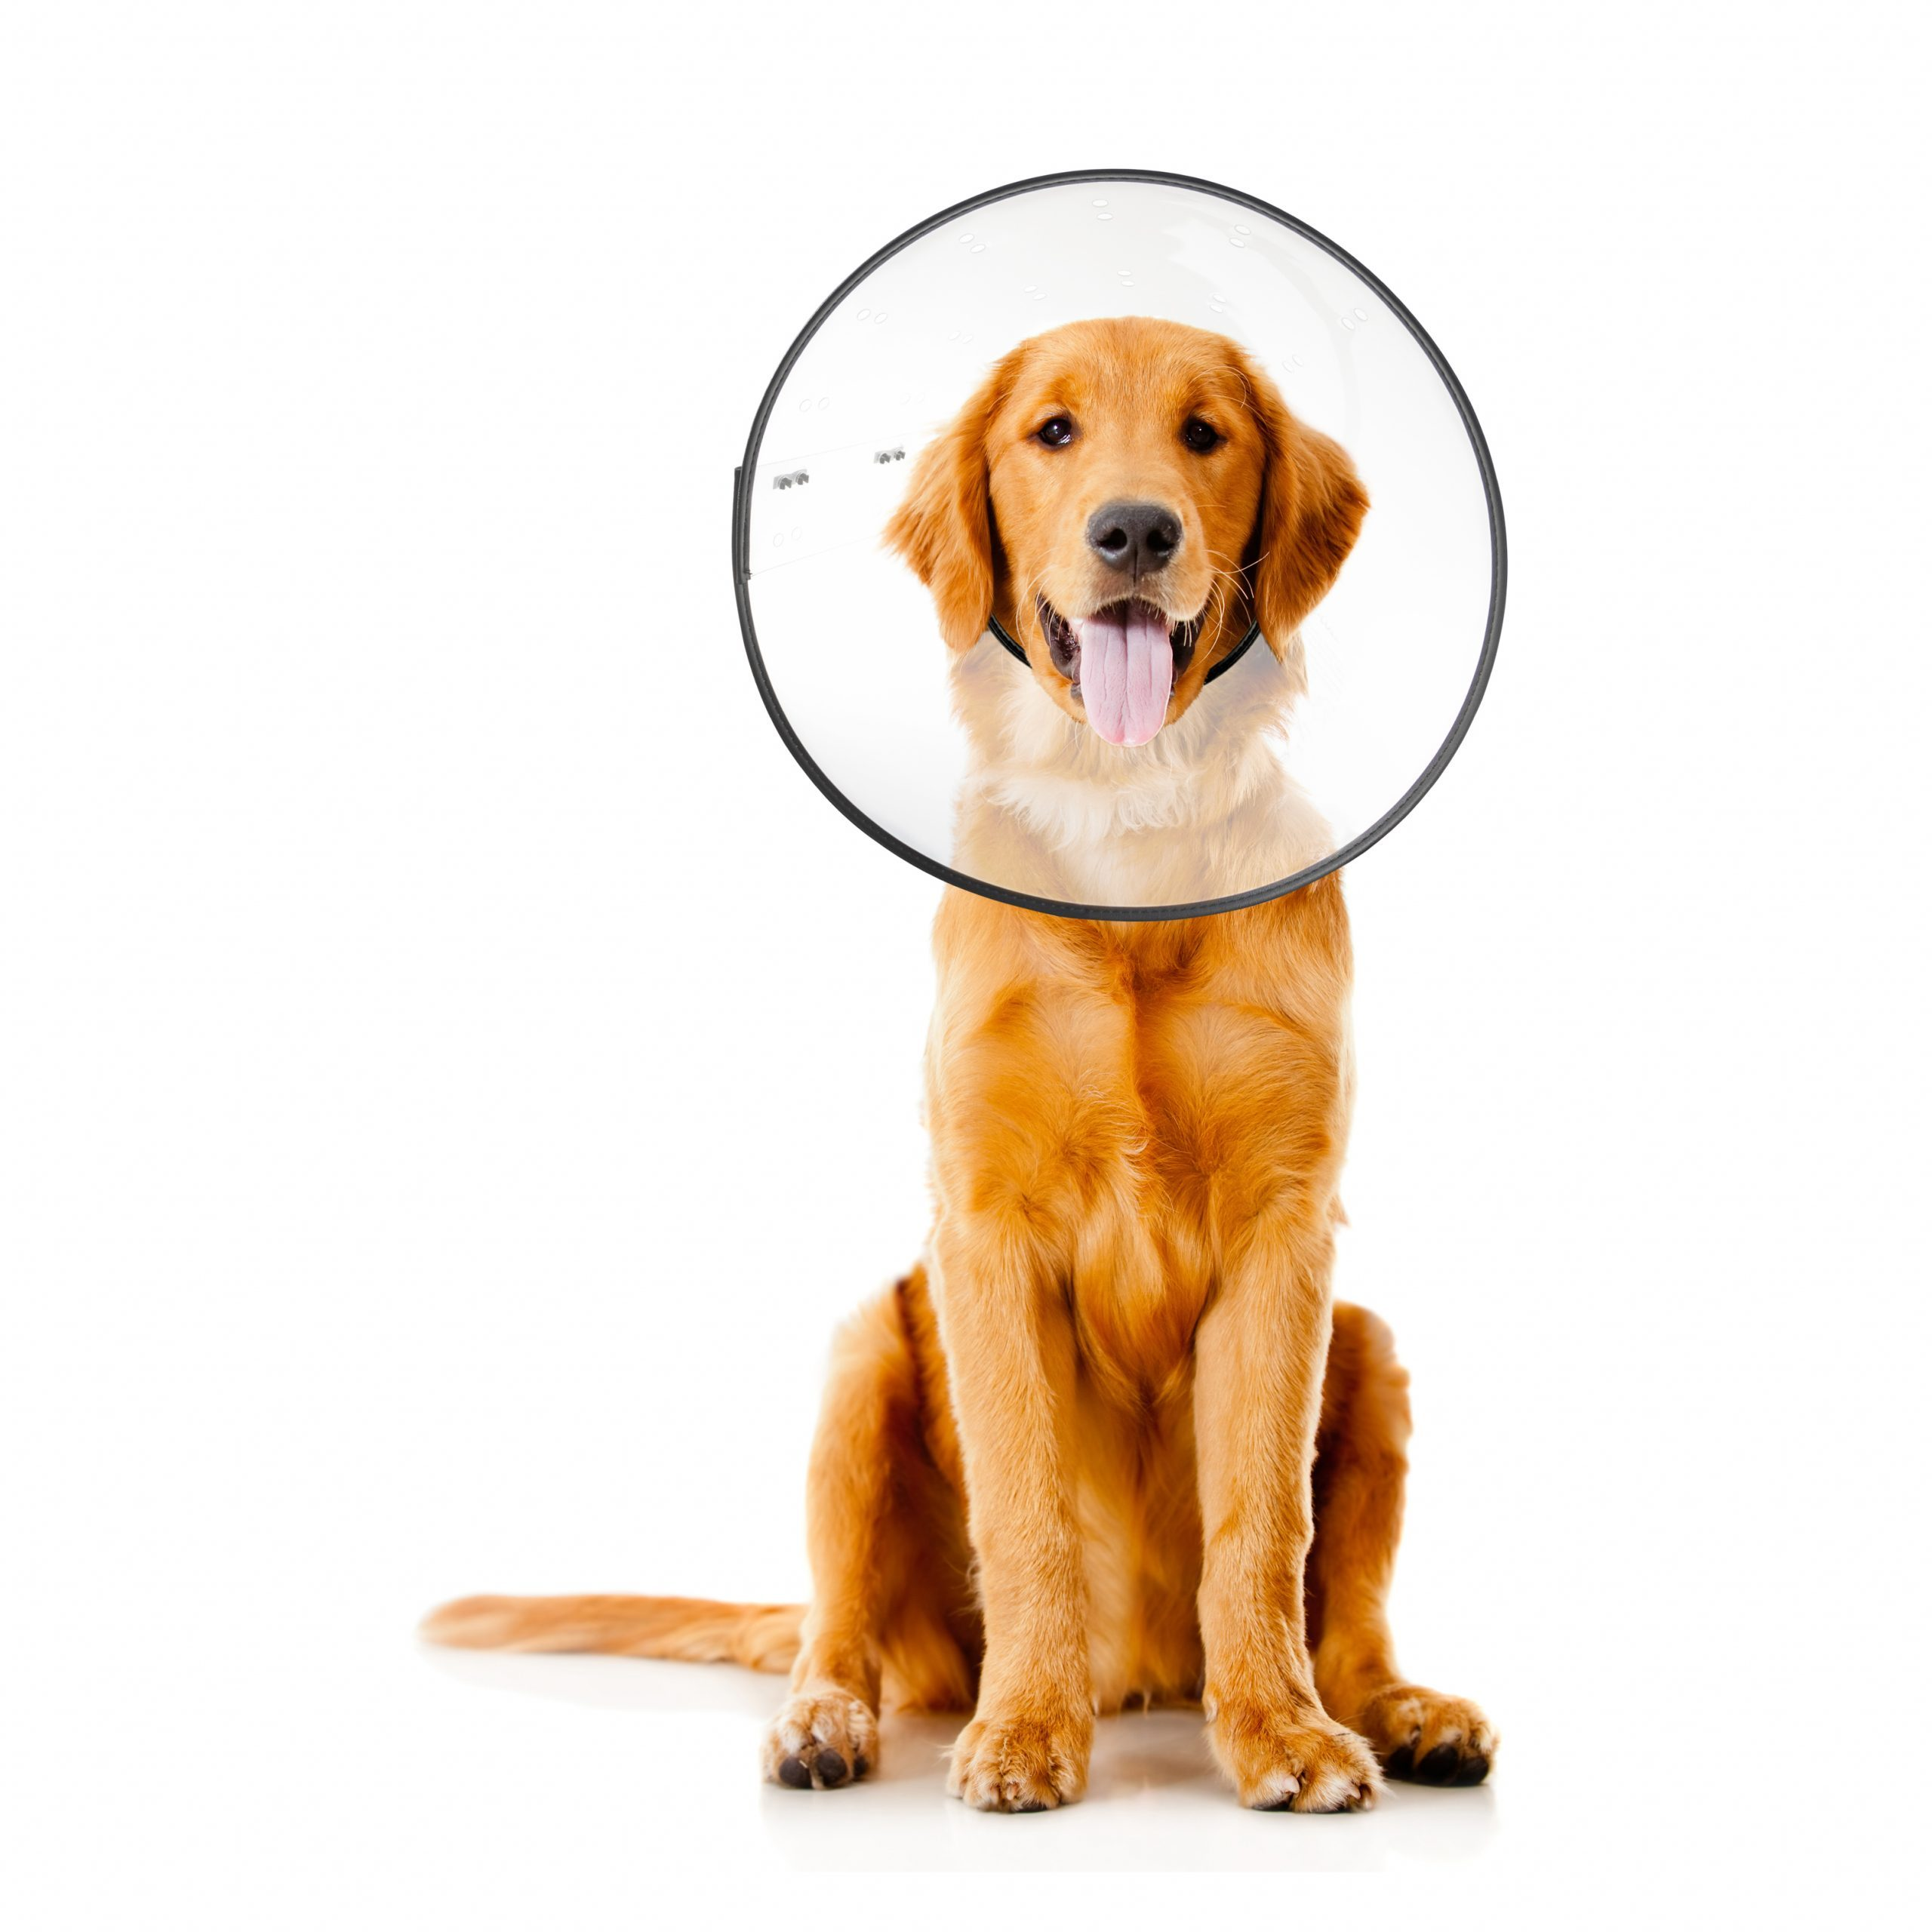 Golden Retreiver wearing plastic recovery cone